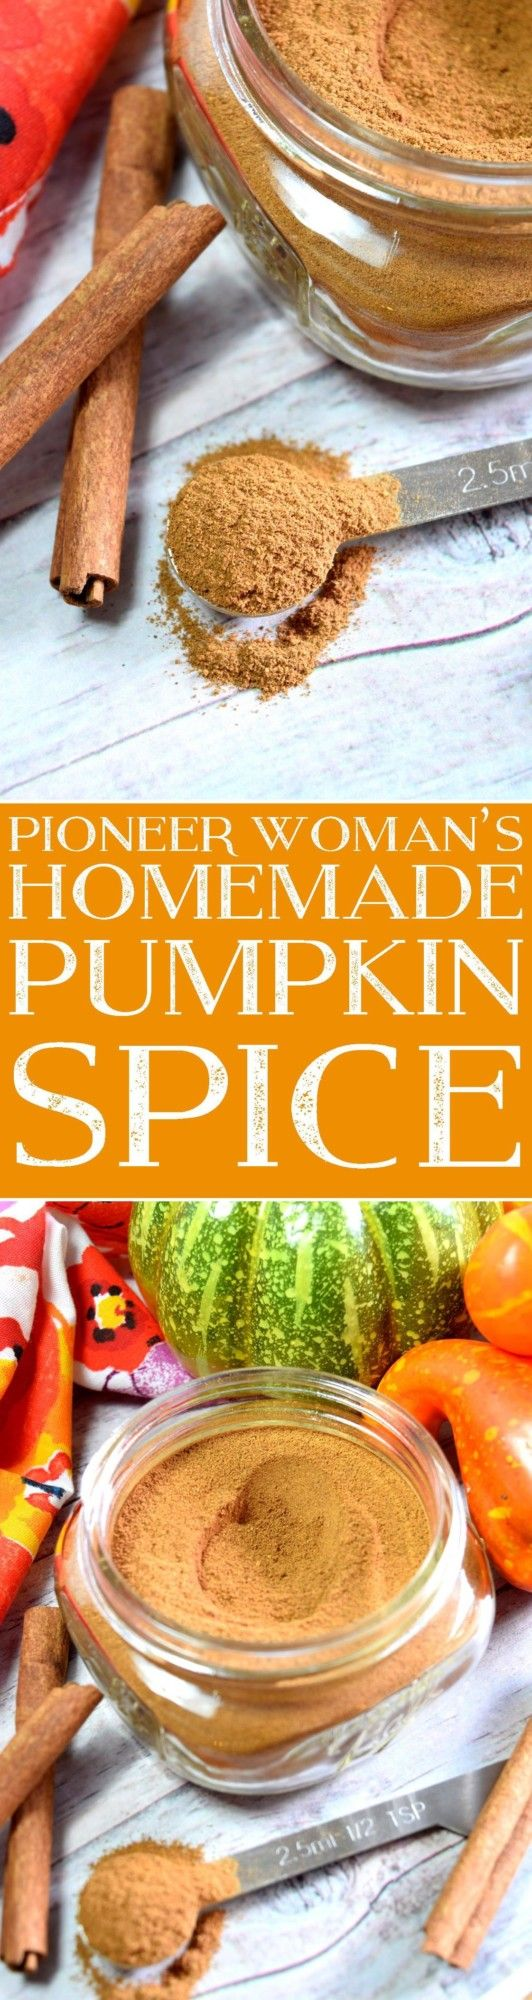 Pioneer Woman's Homemade Pumpkin Spice - easy at-home mix of your favourite fall seasonings!